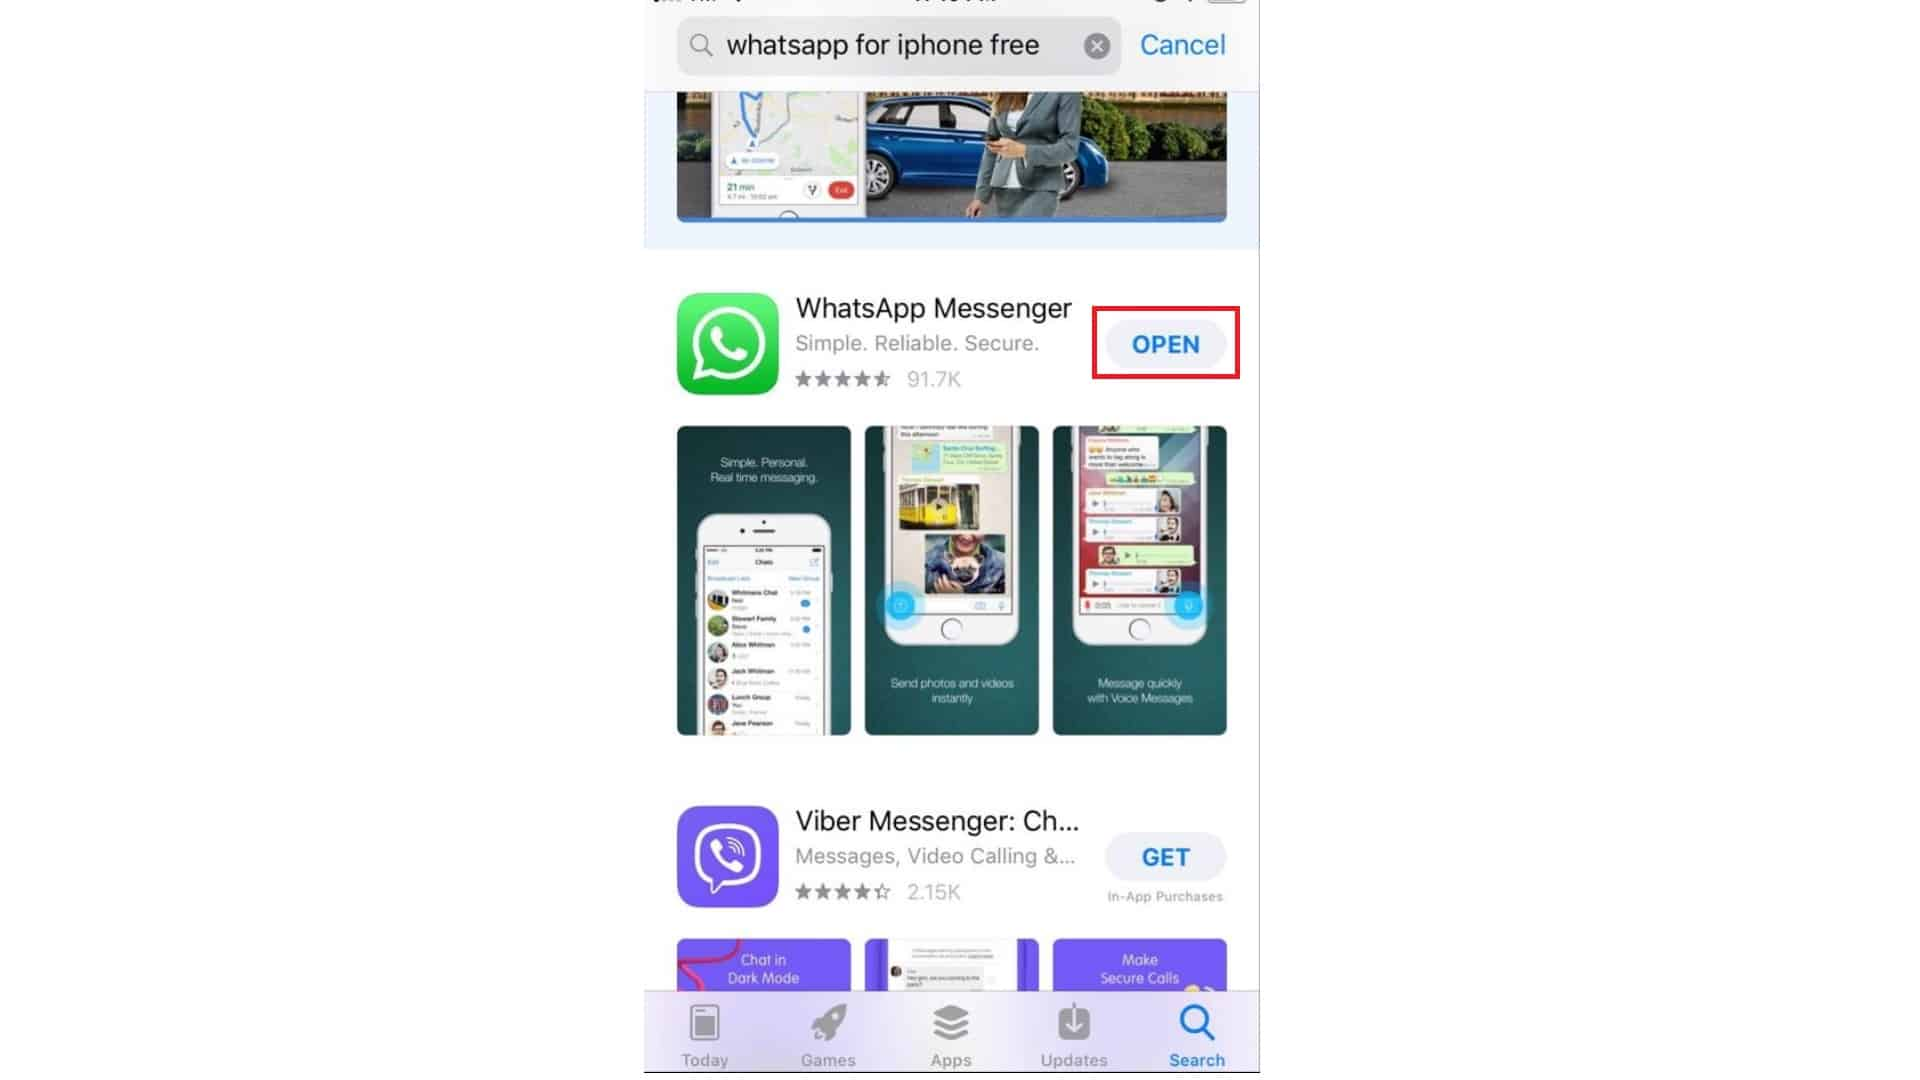 download-and-install-whatsapp-guide-2020